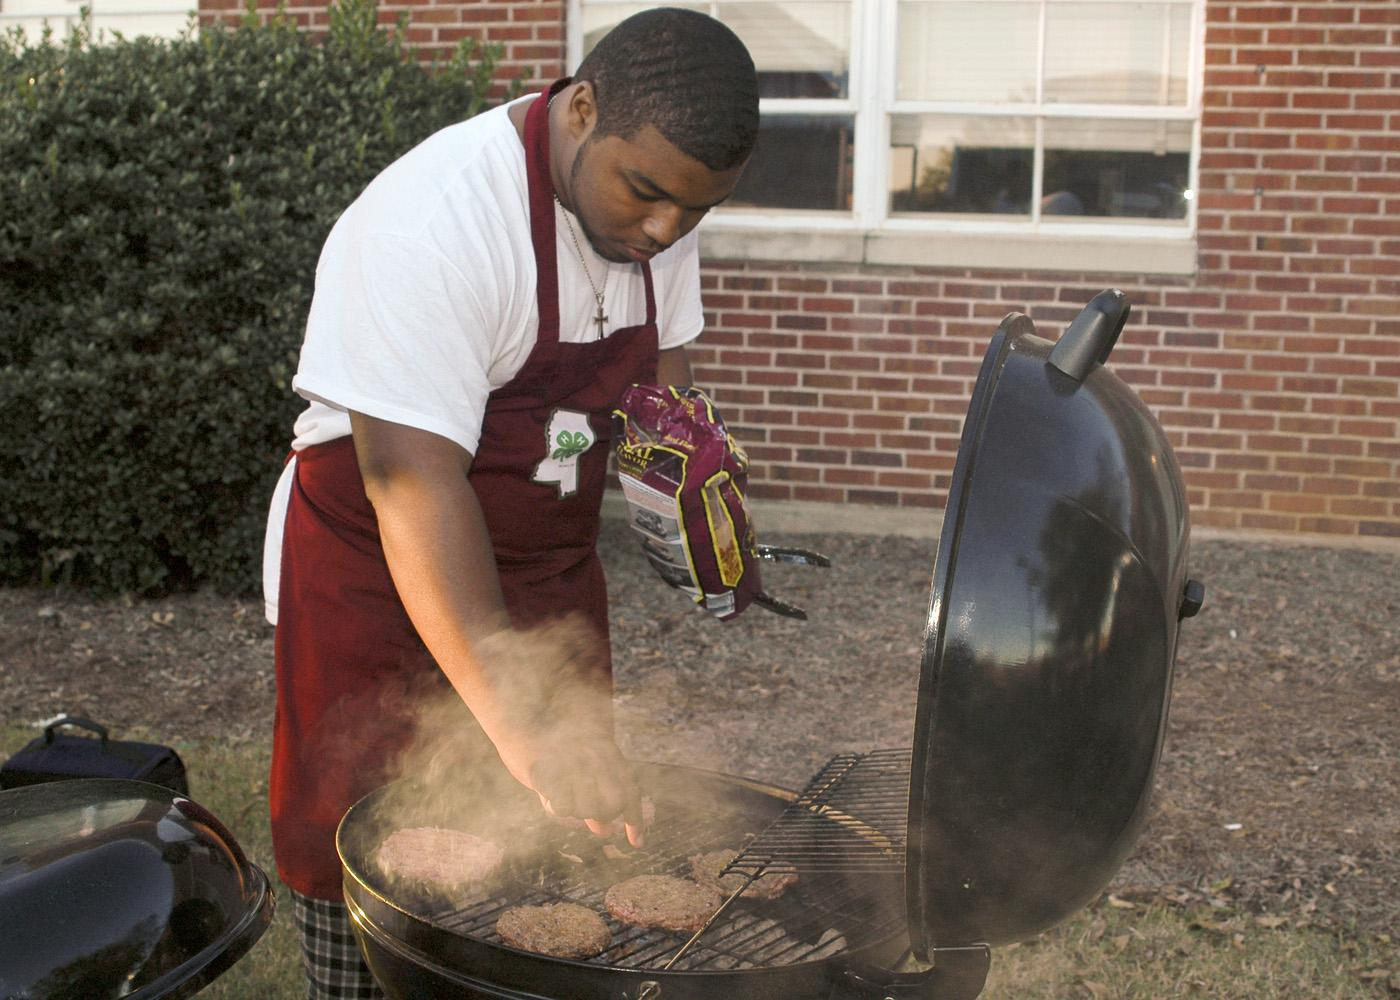 Mississippi State University Collegiate 4-H member Billy Hudson, 19, of Greenwood tries his hand at grilling during one of the club's recent football tailgates. While club members often get together to socialize, they make community service a priority. (Photo by Patti Drapala)